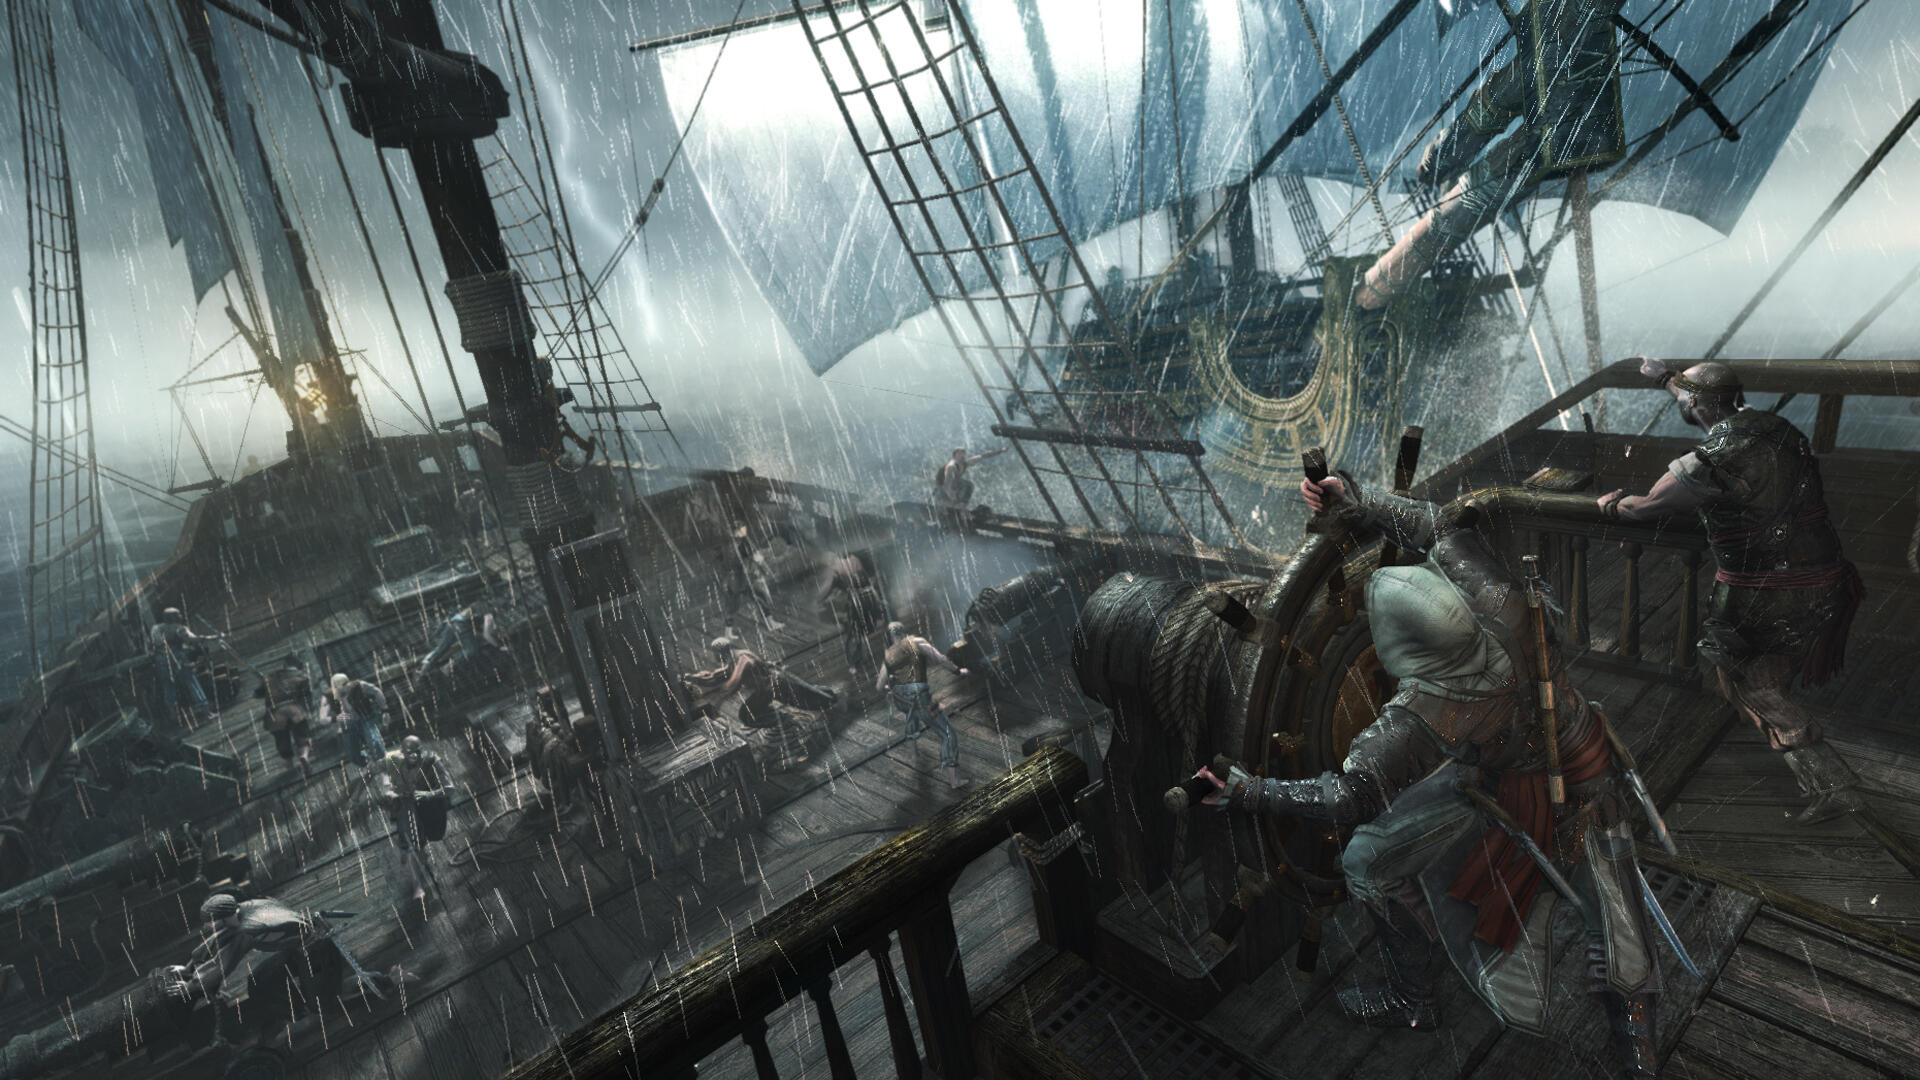 Assassin's Creed 4 Walkthrough: How to Complete Sequences 04